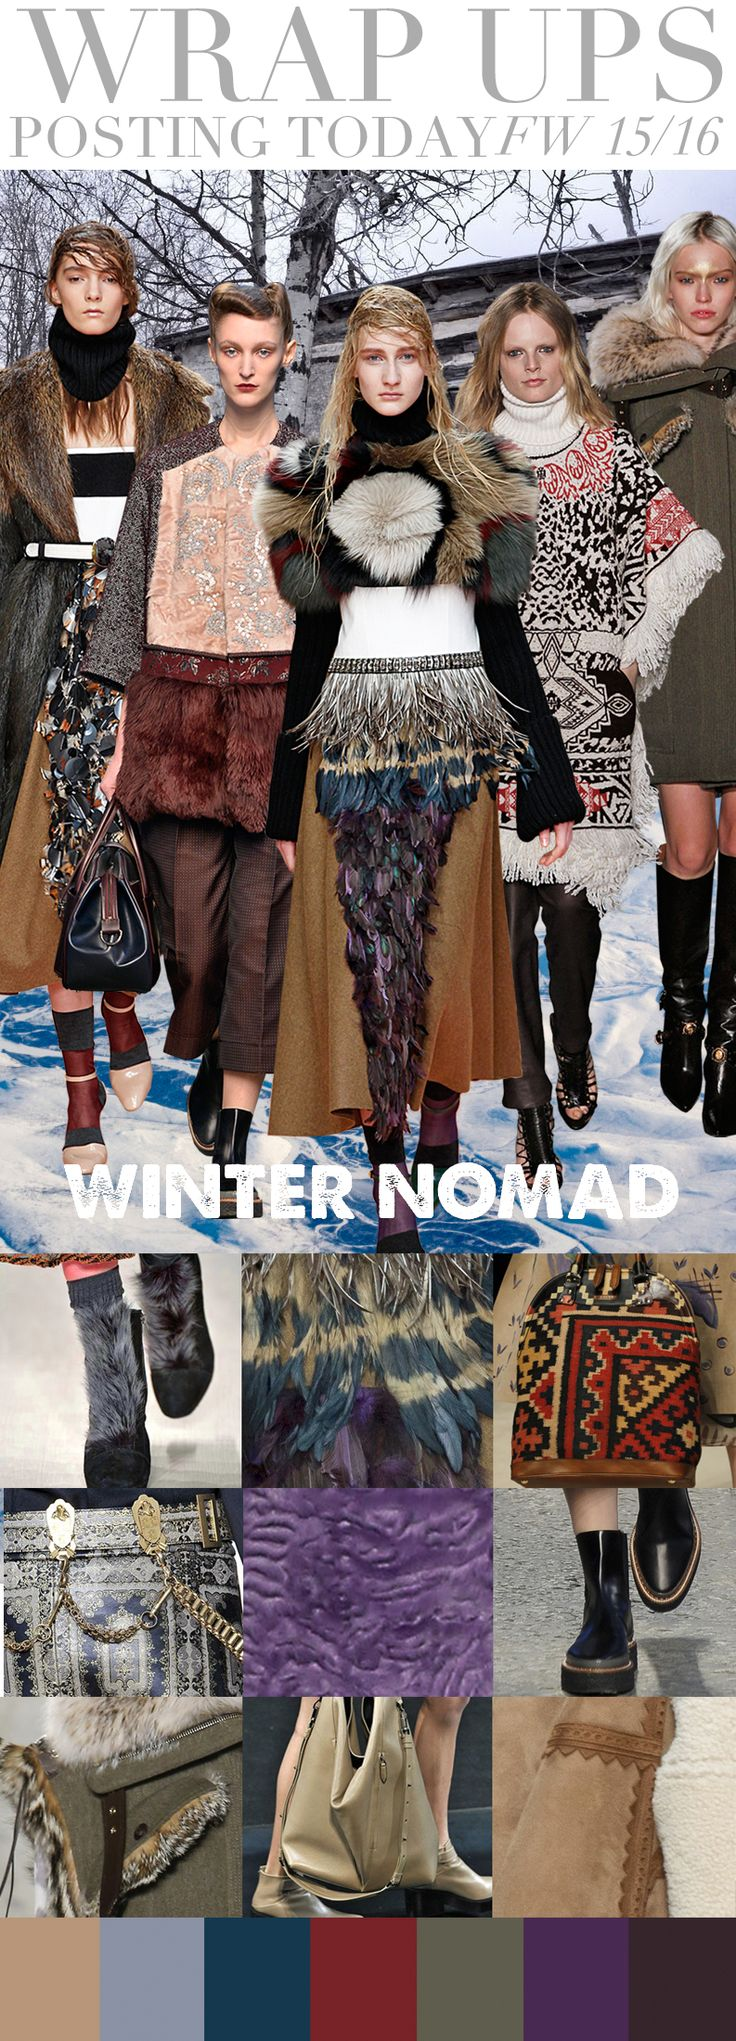 17 Best Images About Fall/Winter '15-16 Trends On